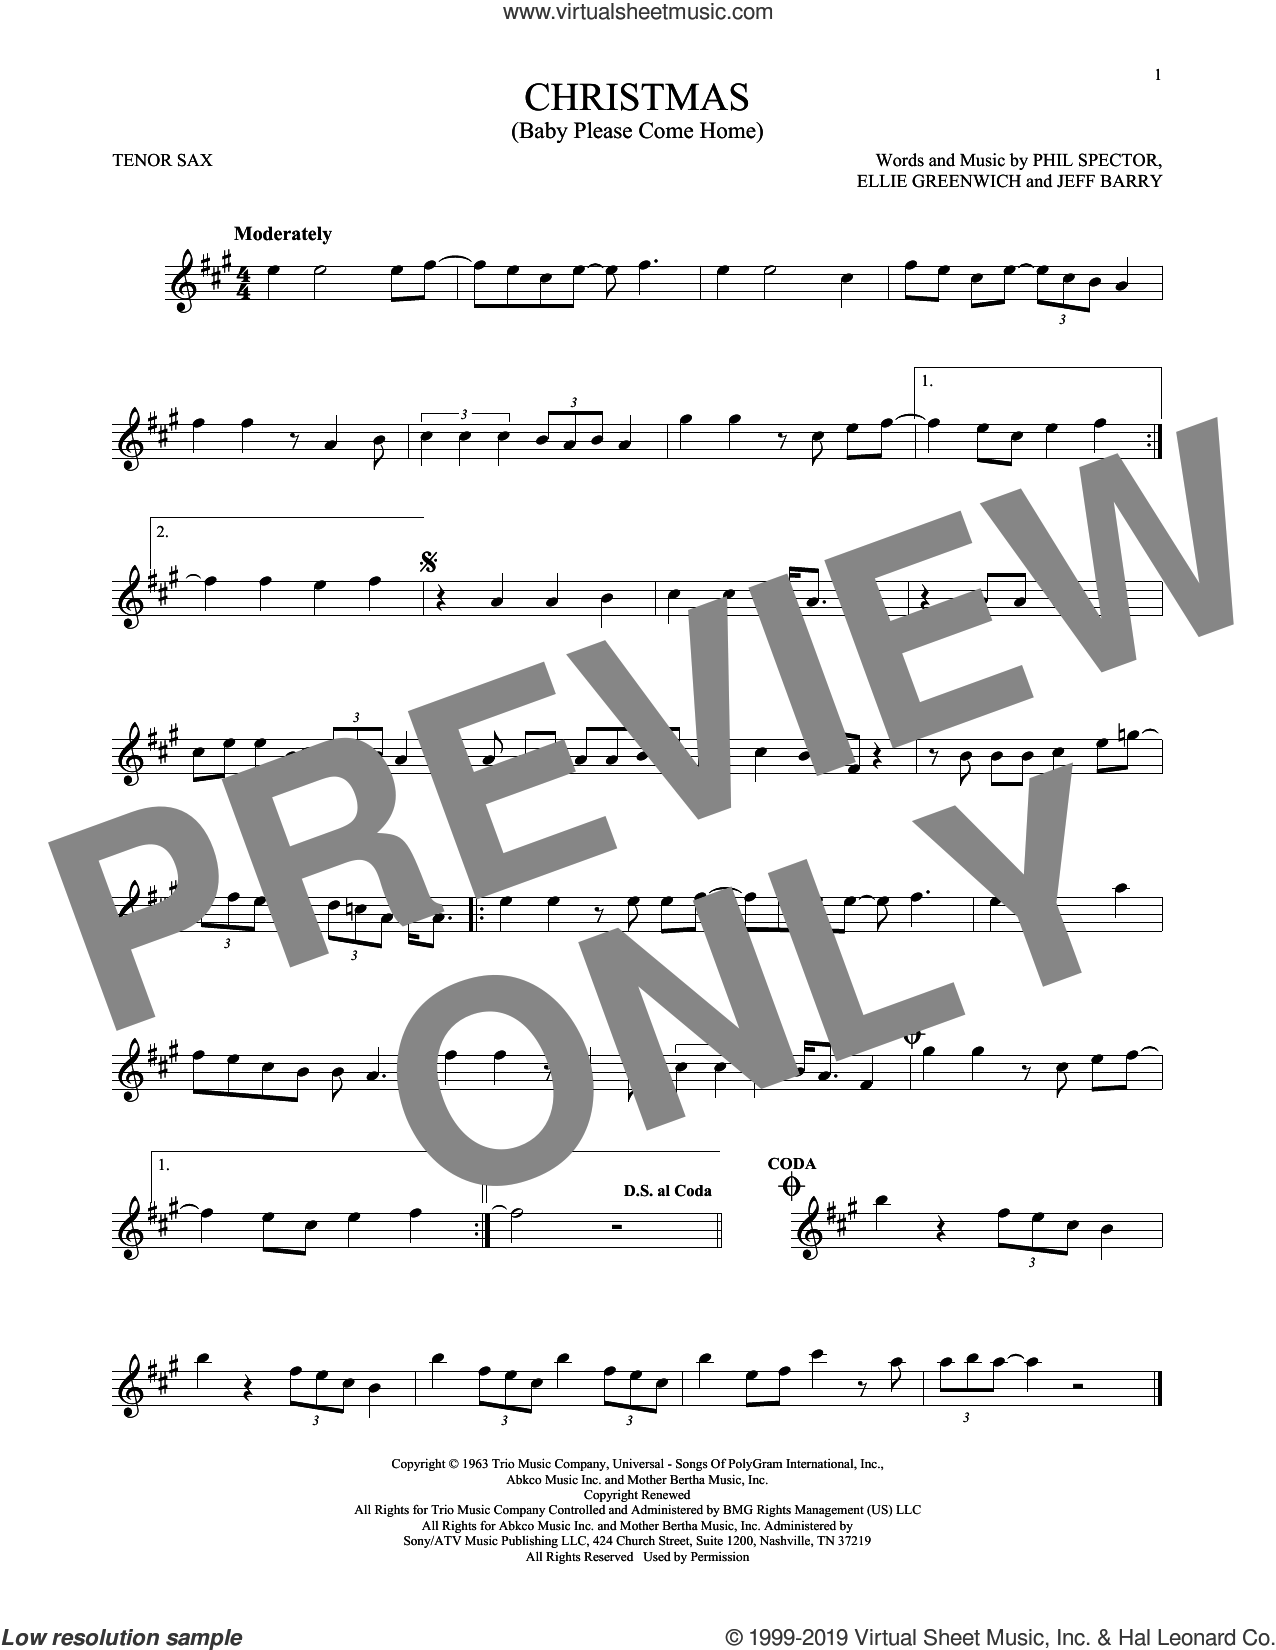 Christmas (Baby Please Come Home) sheet music for tenor saxophone solo by Mariah Carey, Ellie Greenwich, Jeff Barry and Phil Spector, intermediate skill level